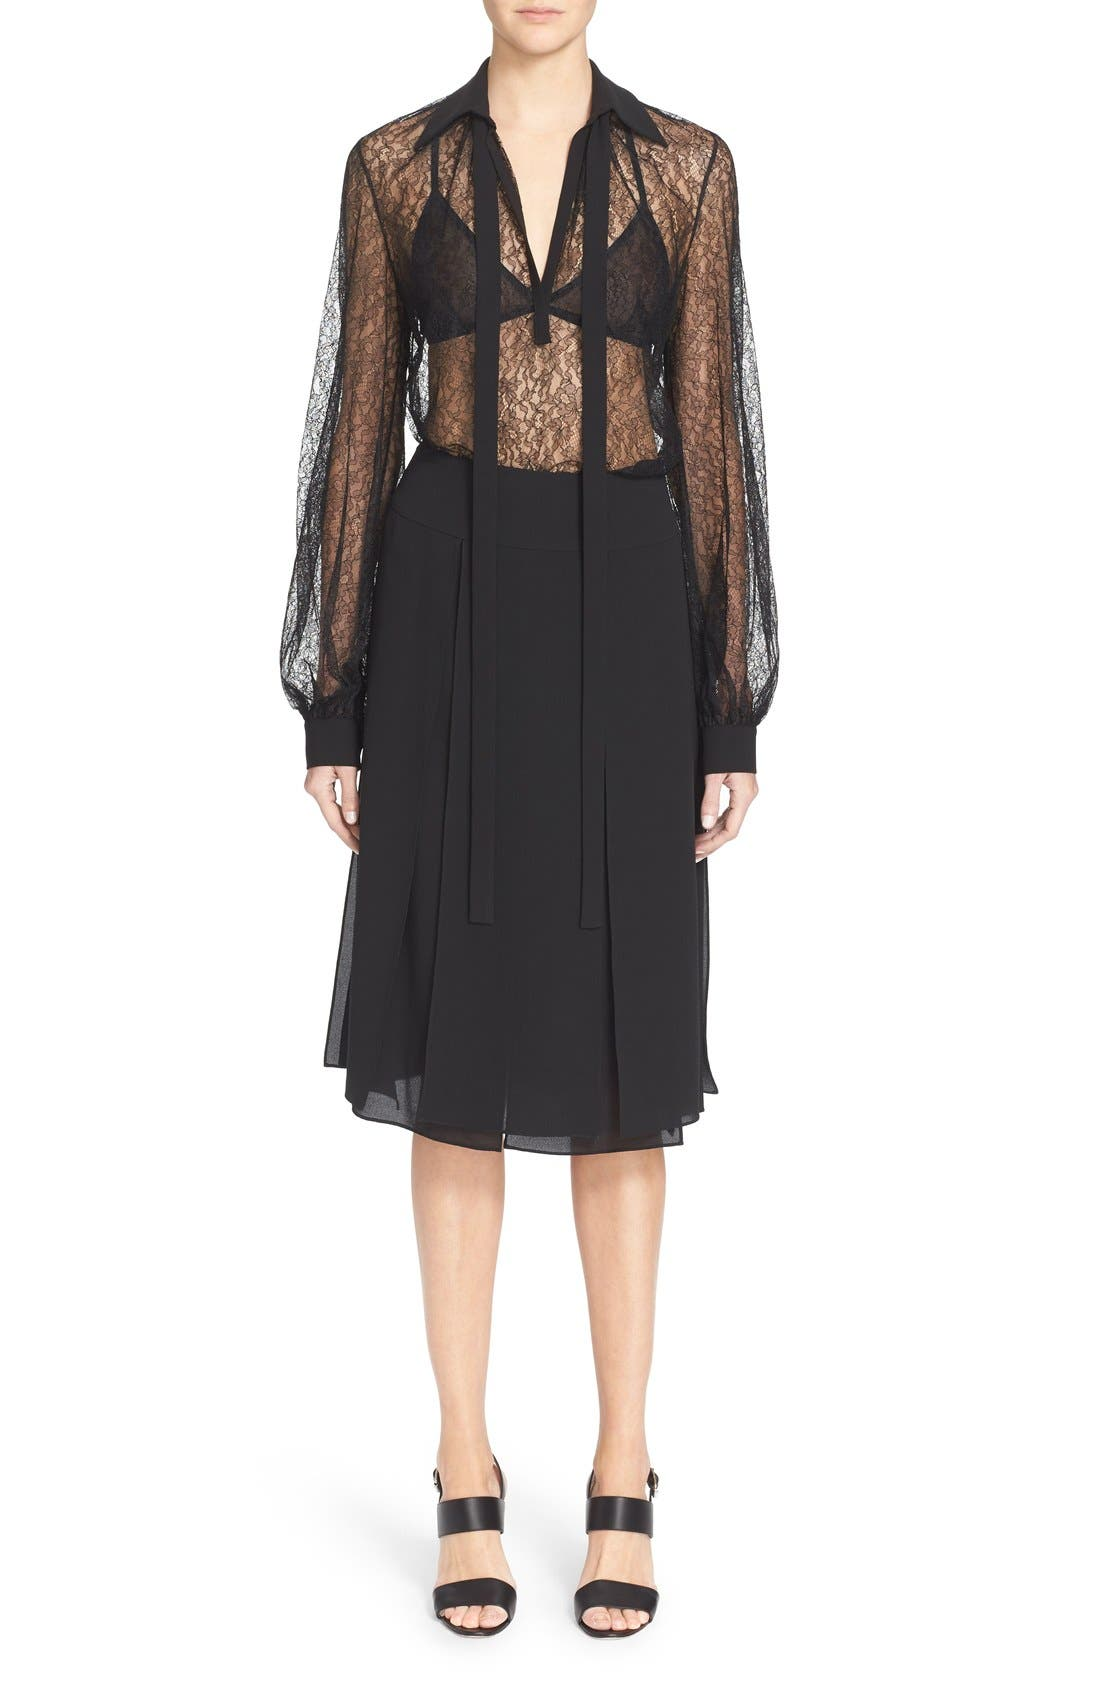 Main Image - Michael Kors Tie Neck Chantilly Lace Blouse